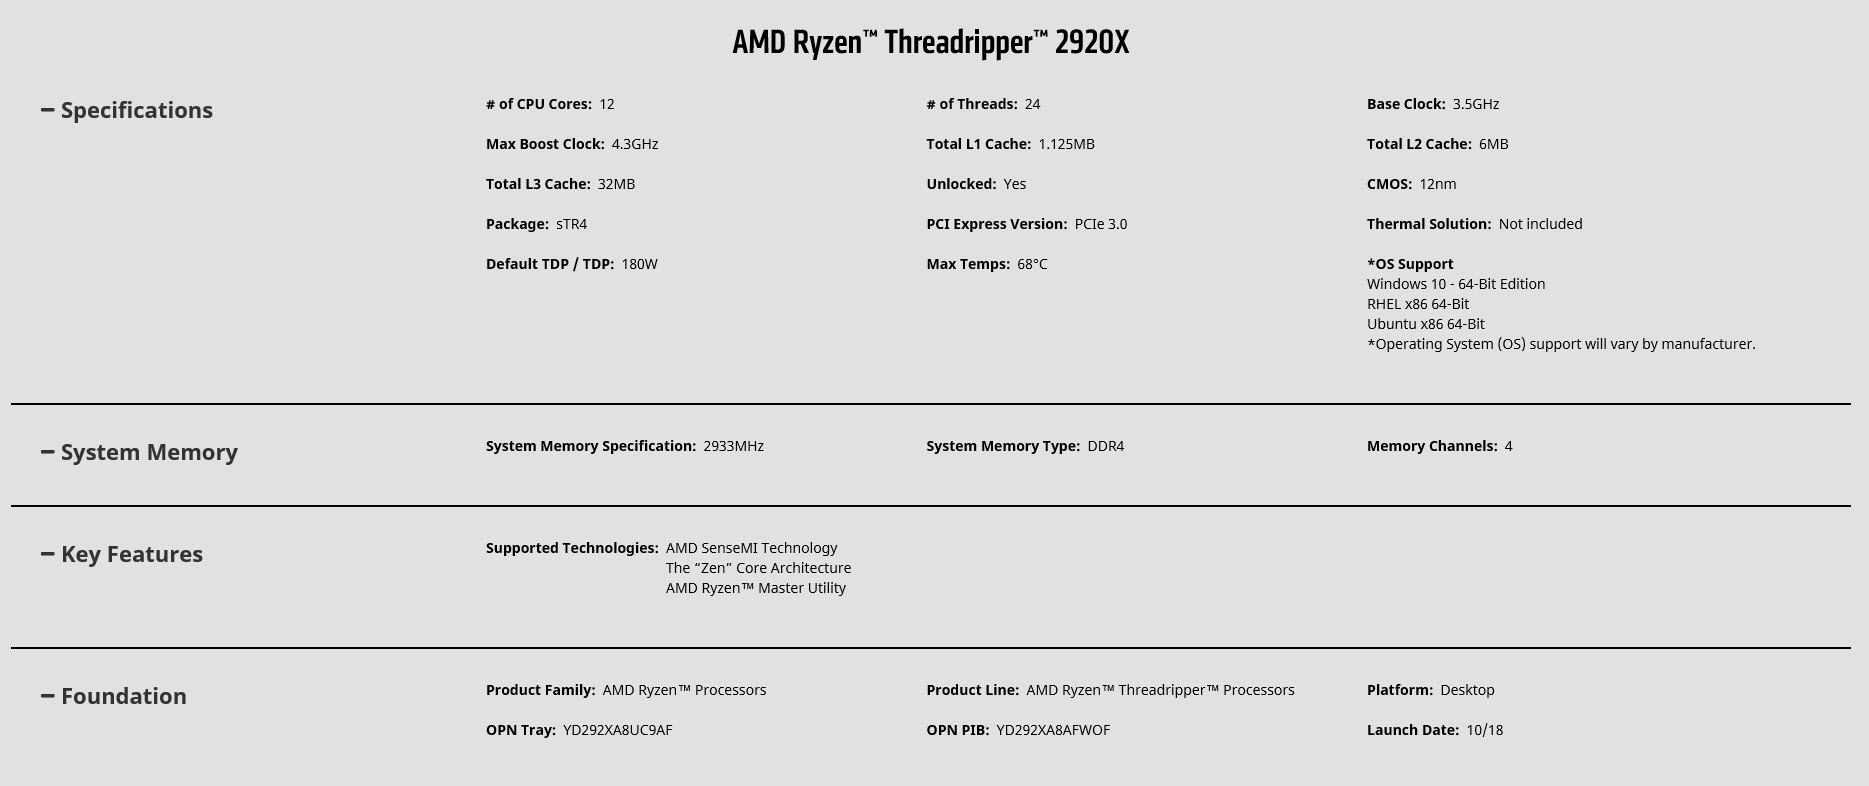 2018 12 11 11 07 14 AMD RYZEN THREADRIPPER 2920X PROCESSOR REVIEW